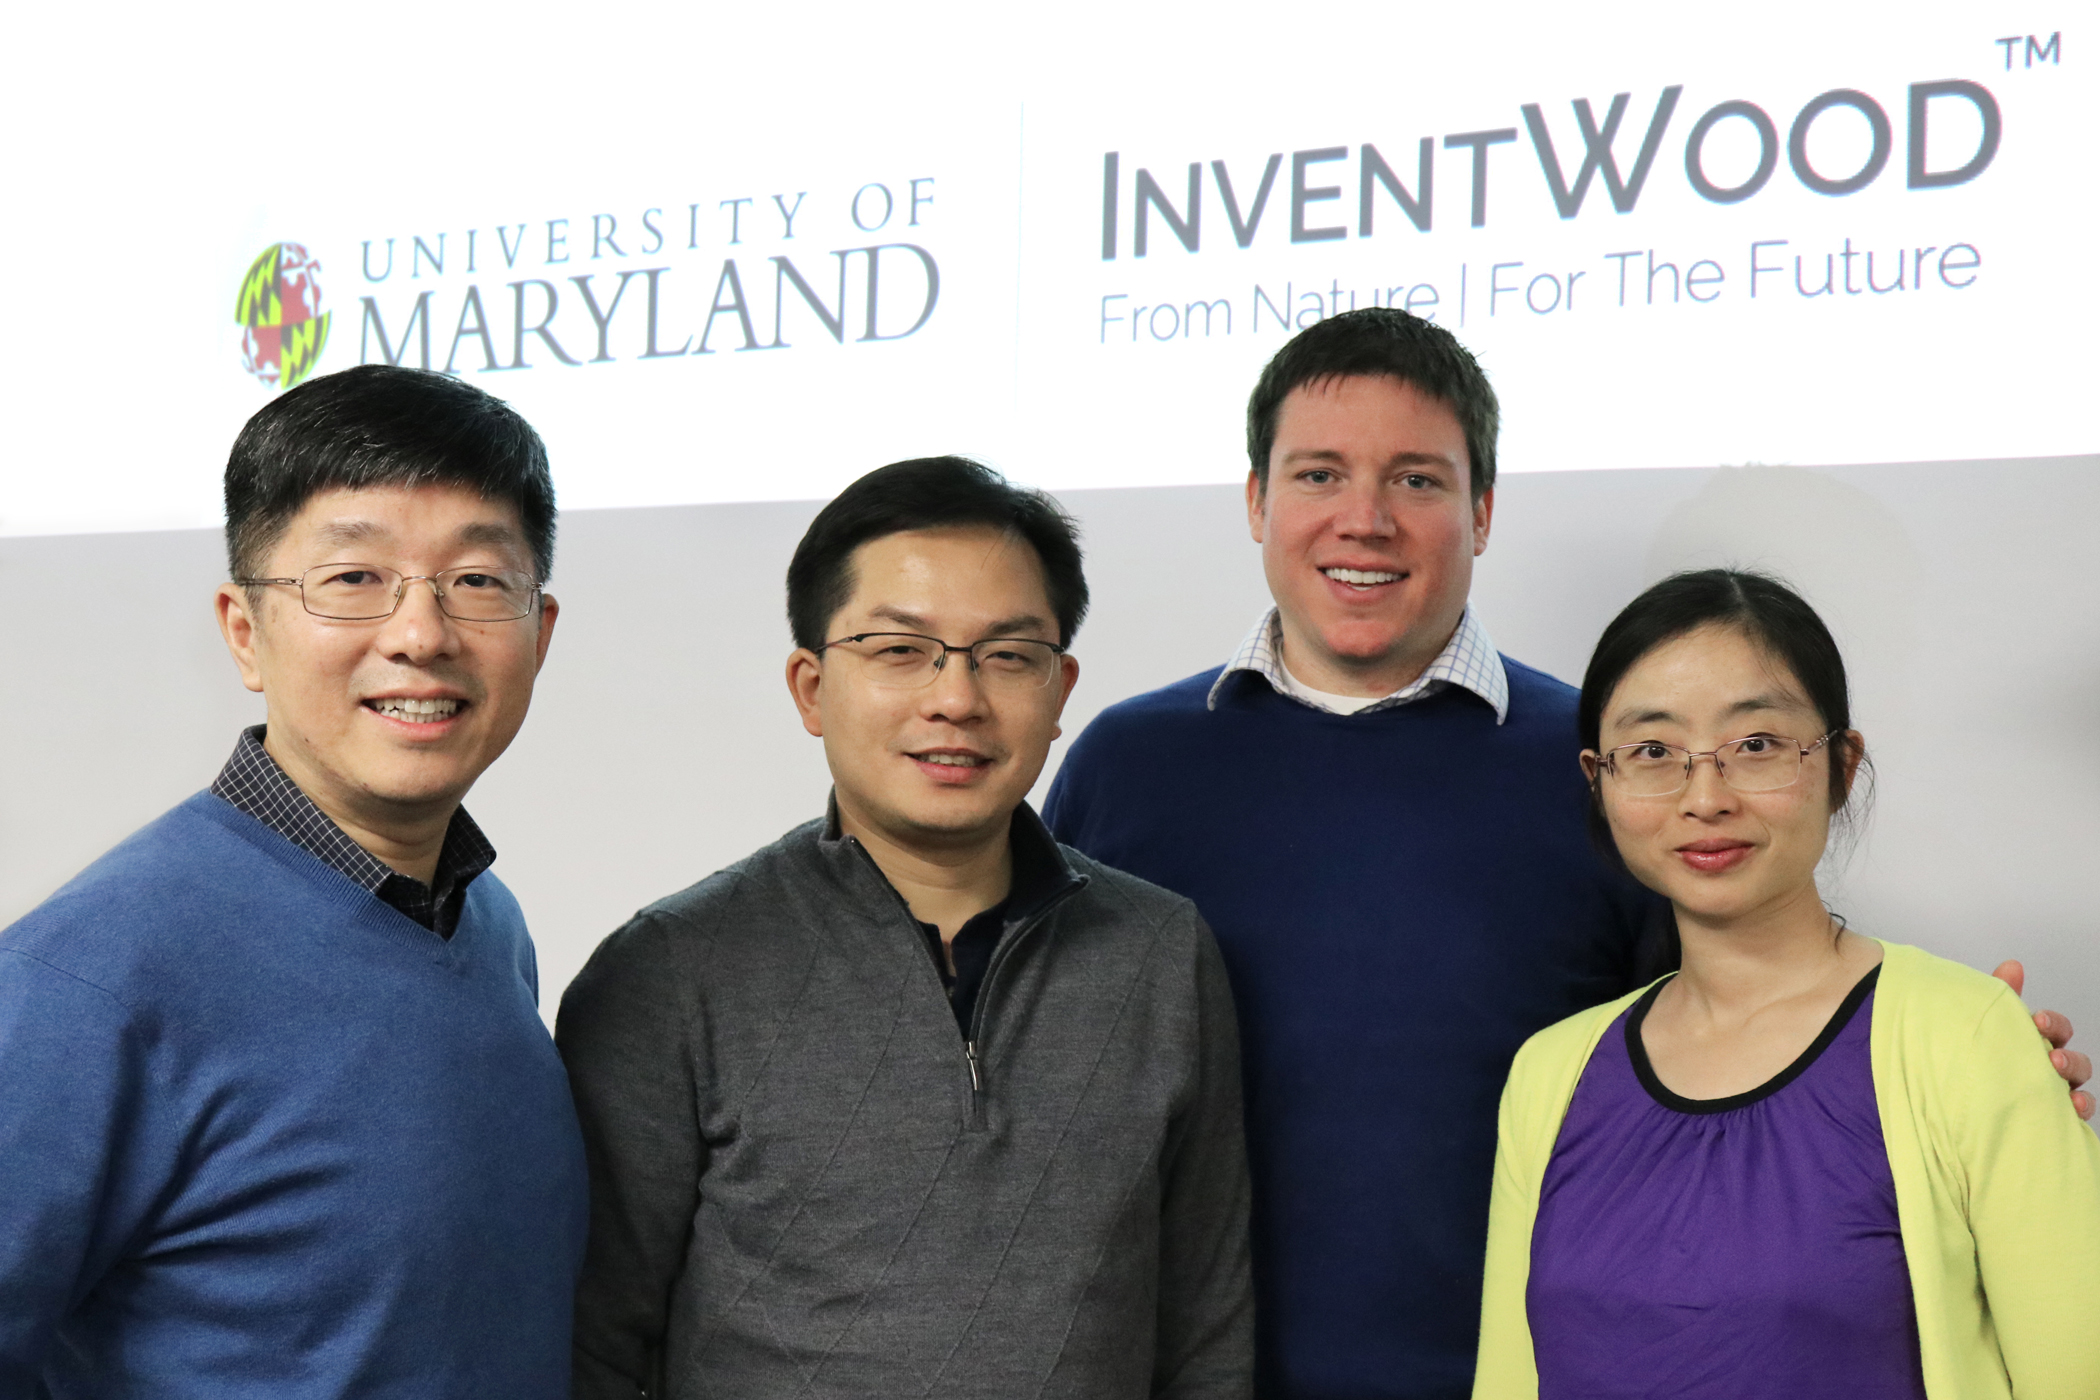 Left to right: Dr. Teng Li (Co-PI, UMD), Dr. Liangbing Hu (PI, UMD), Josh Cable (Inventwood LLC) and Amy Gong (Inventwood LLC)